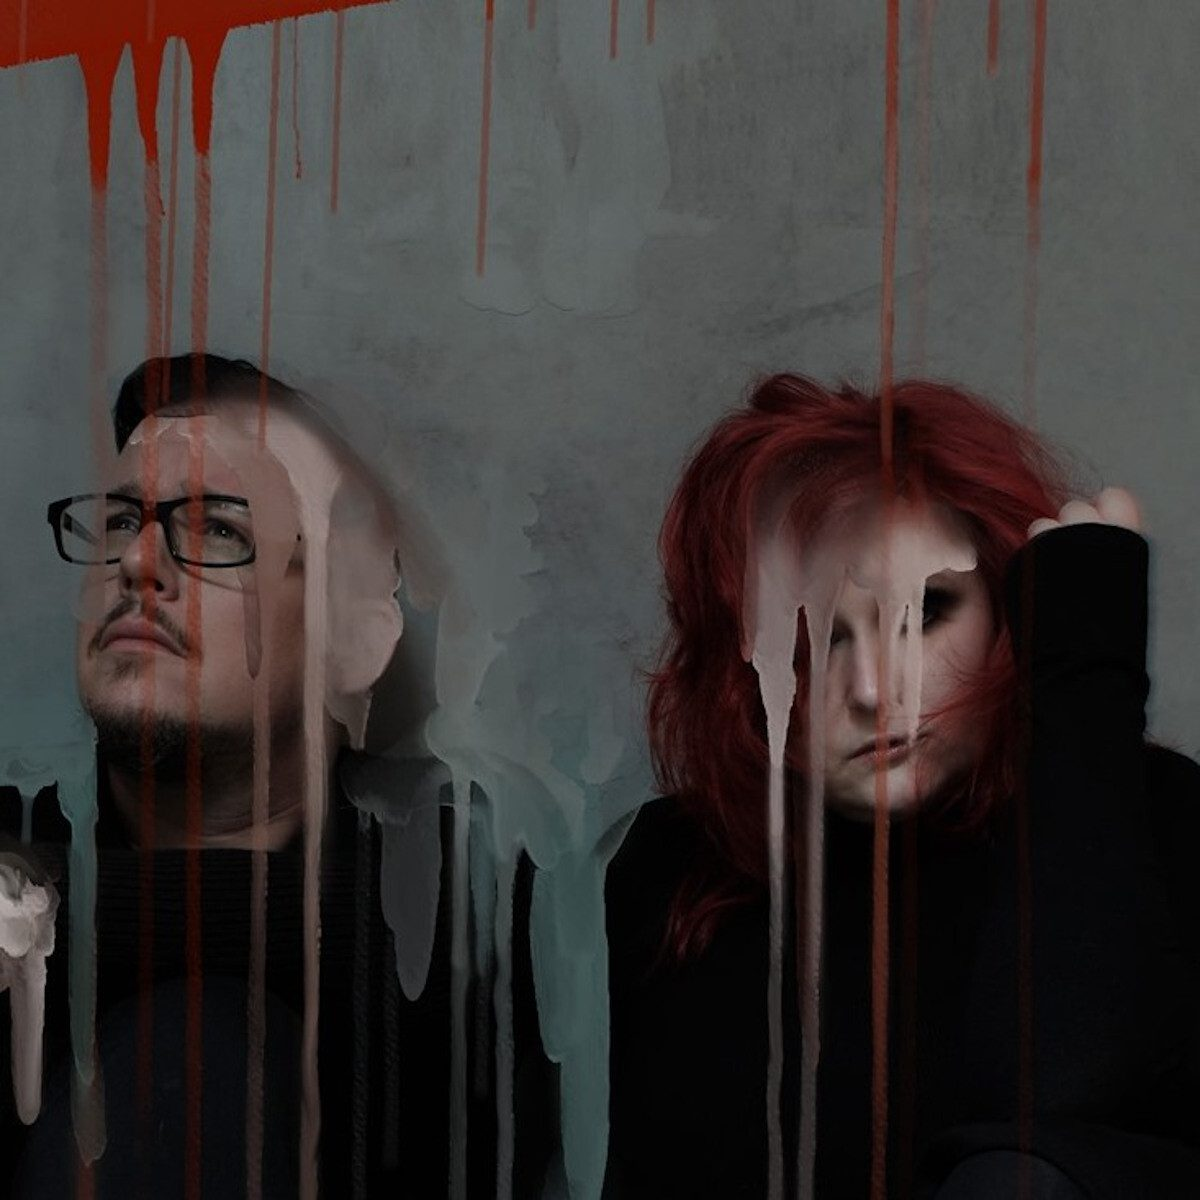 L'âme Immortelle to return with all new album 'In tiefem Fall' on January 2022